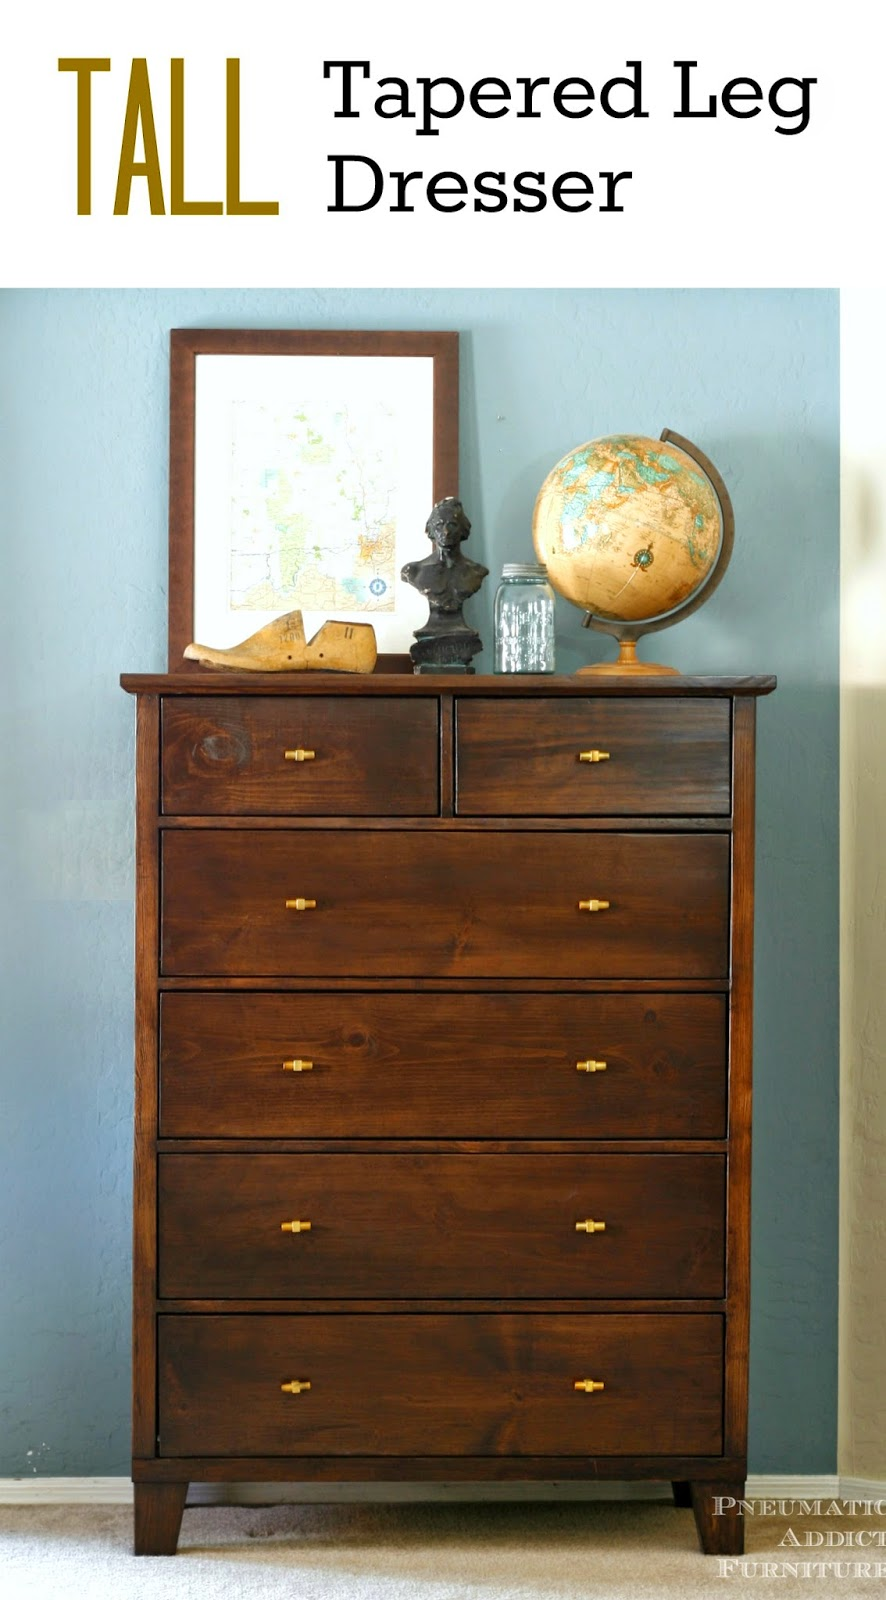 This is beautiful! Learn to build your own PB knock-off, tall dresser.